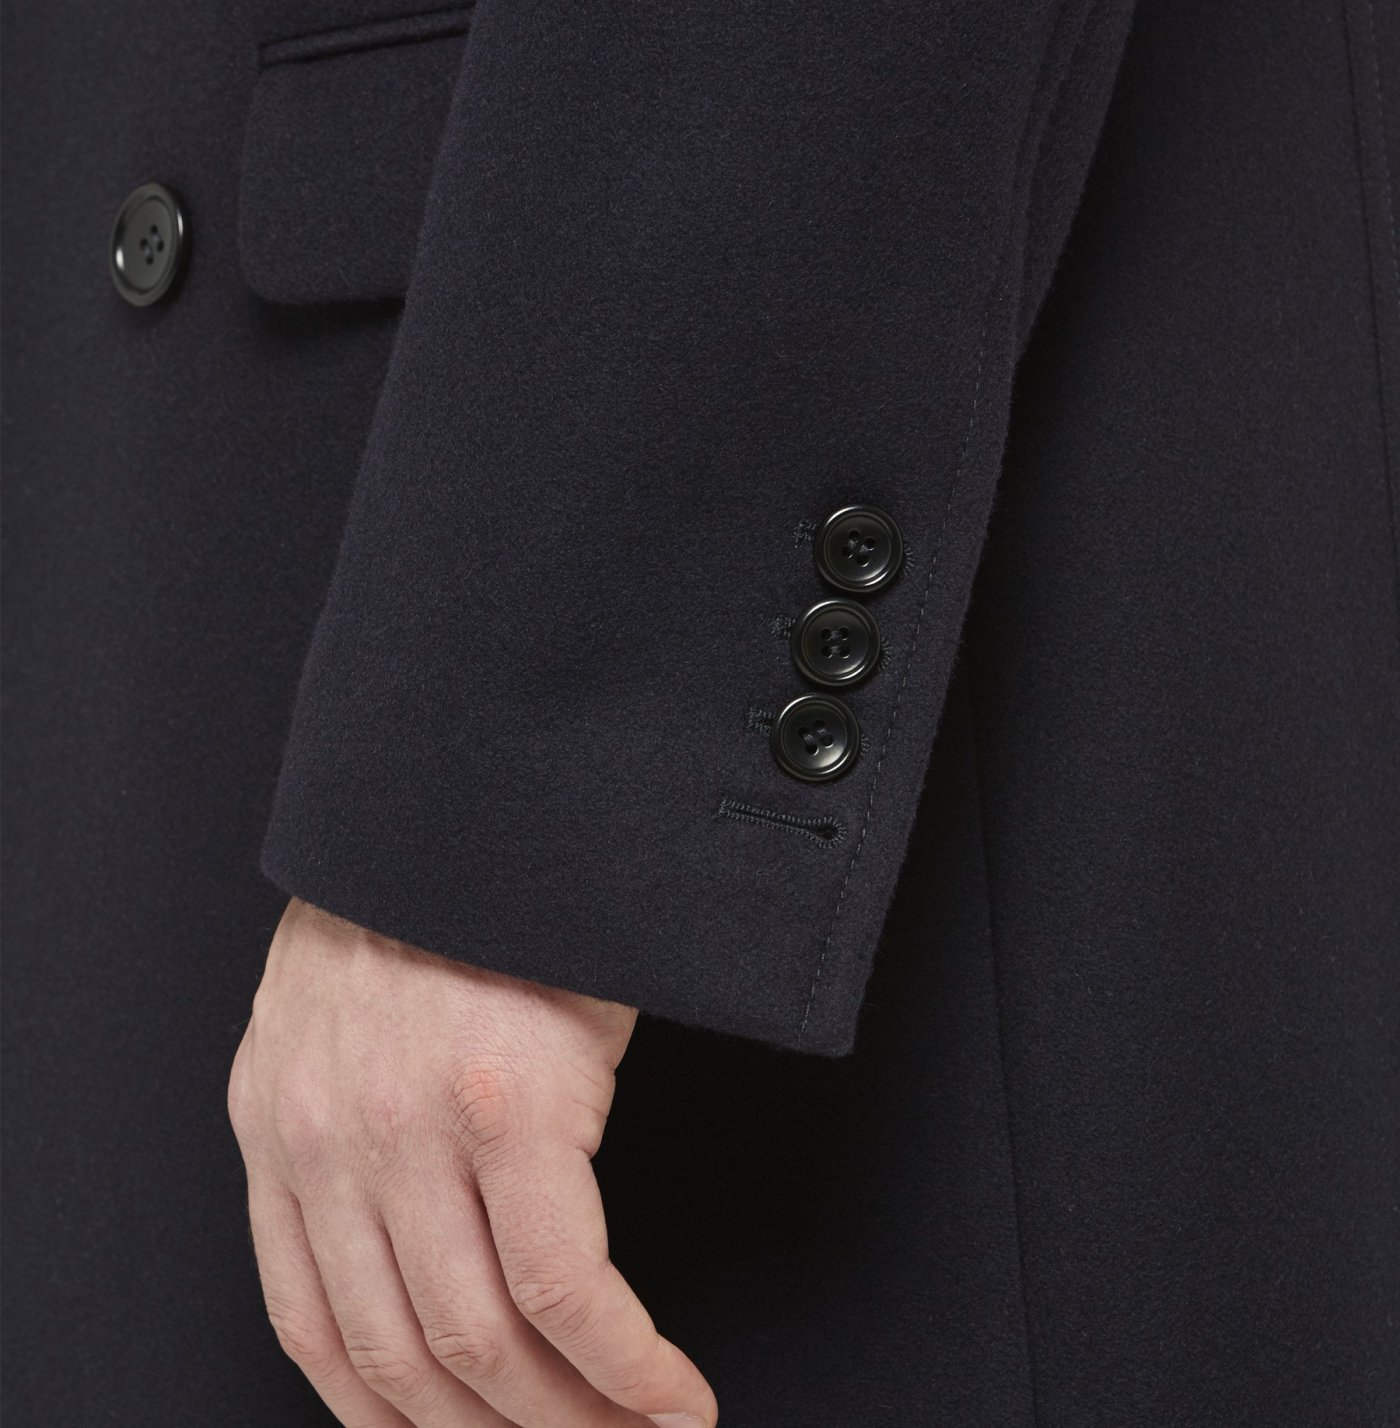 MNDATORY_Double_Breasted_Coat_Details_36958c70-56ce-47cf-b549-1c534c74a27e_2048x2048.jpg